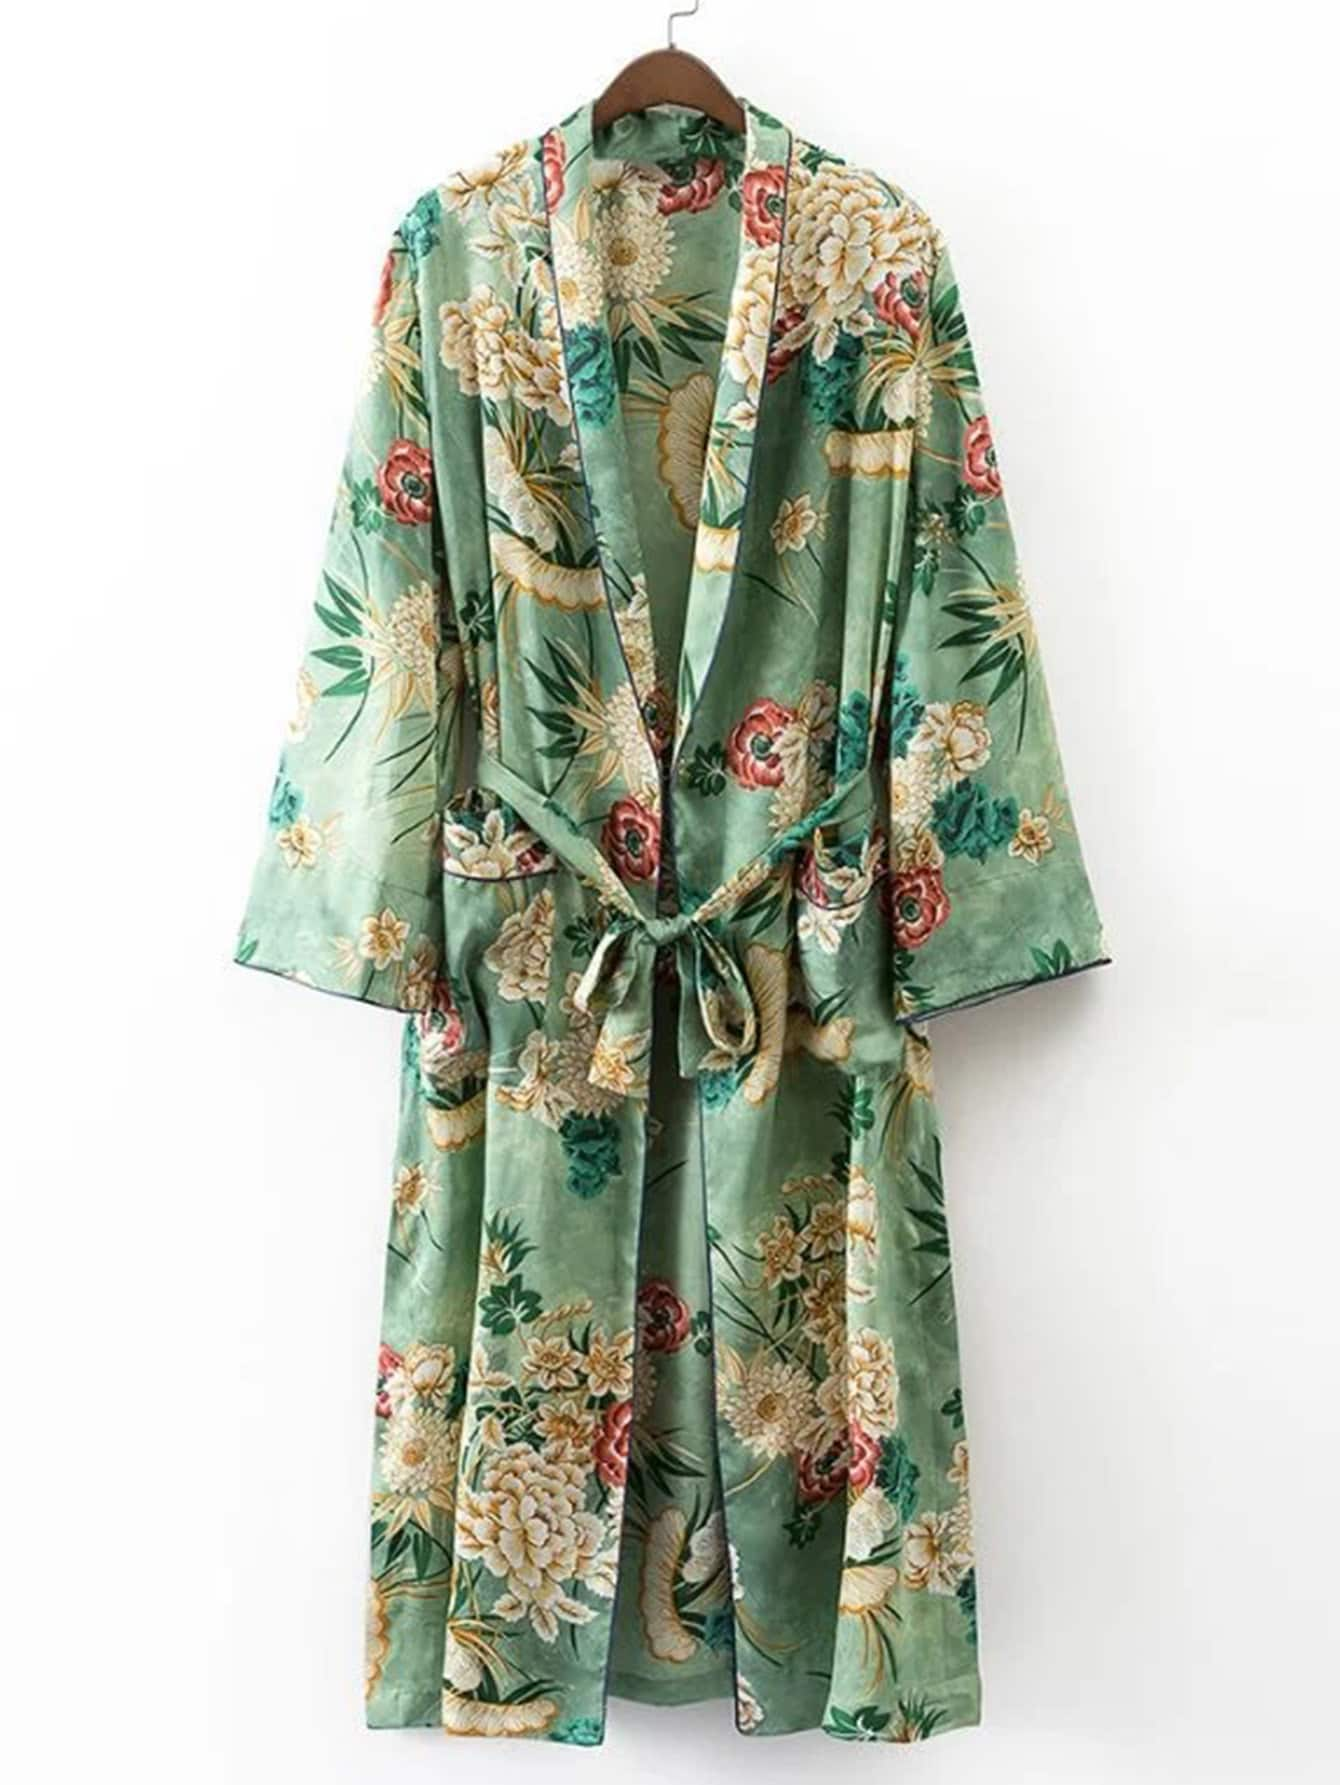 Calico Print Contrast Piping Self Tie Longline Kimono calico print shirt dress with self tie